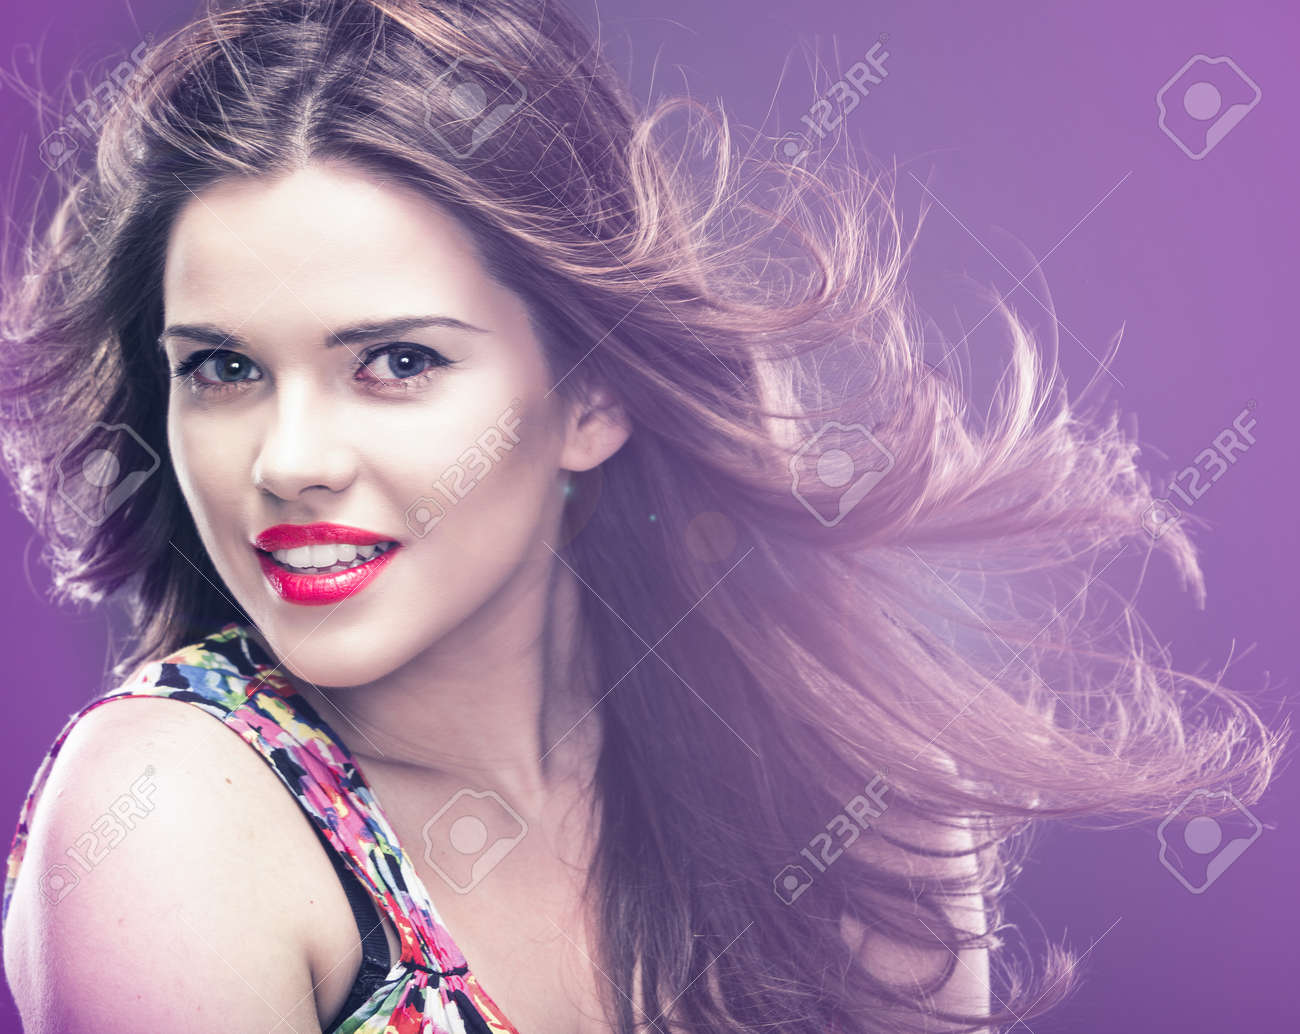 Stock photo woman hair style fashion portrait isolated close up female face